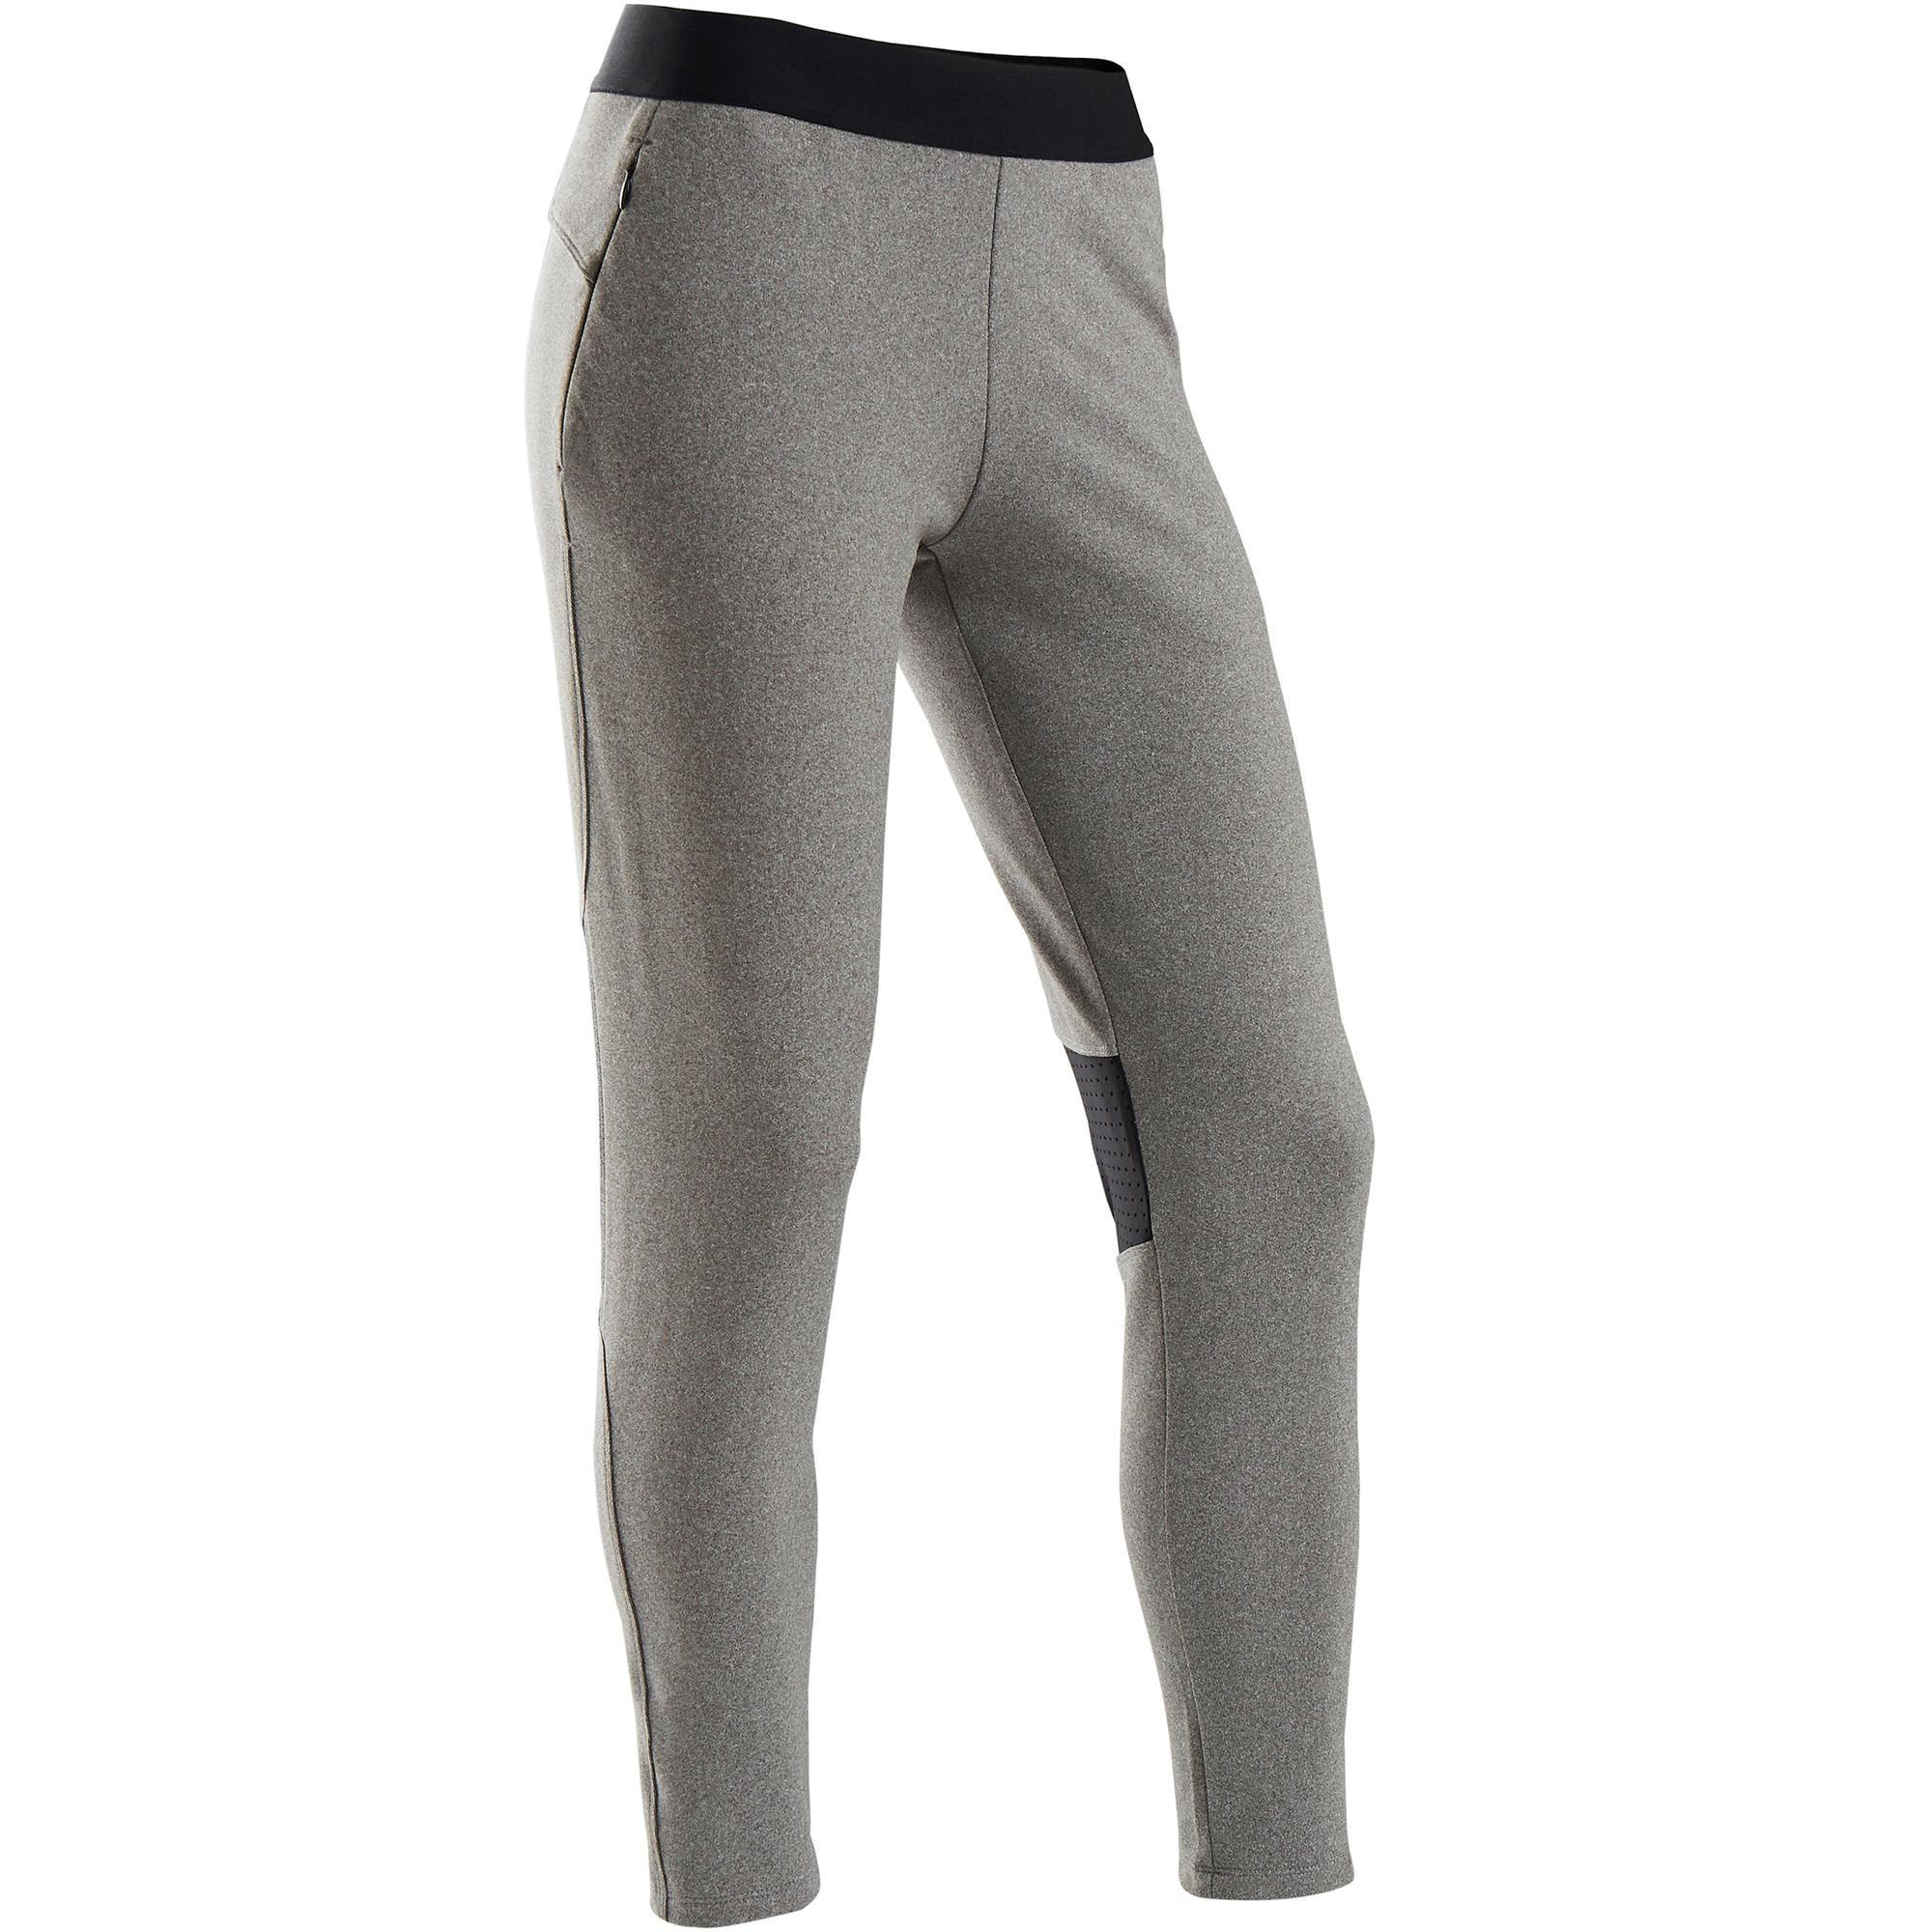 Trainingshose Slim warm atmungsaktiv S900 Gym Kinder grau